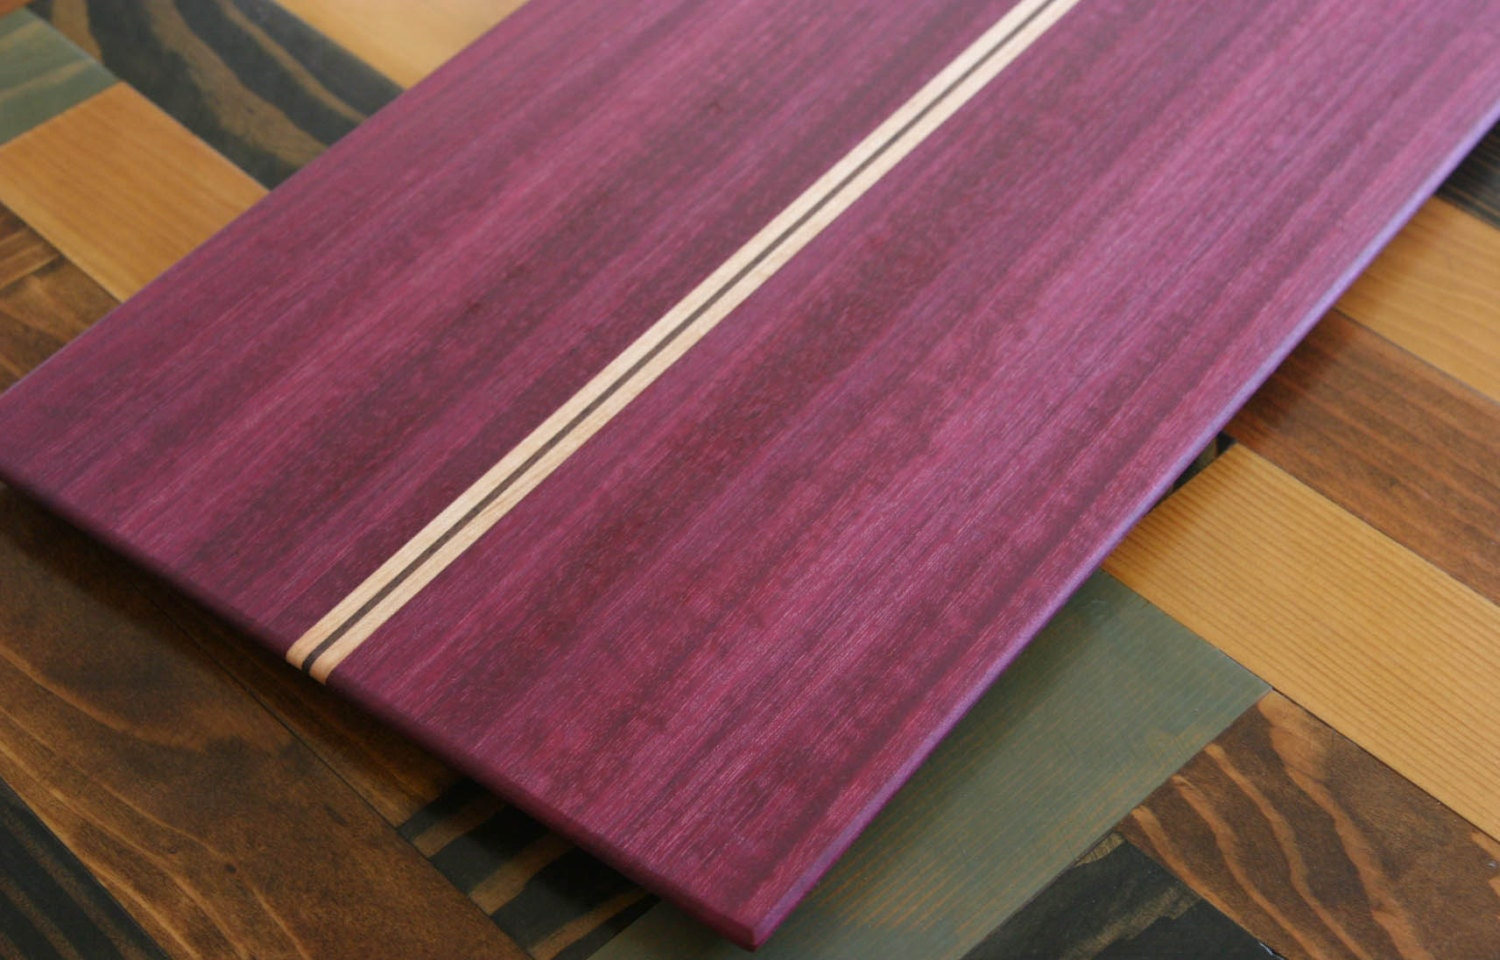 Purpleheart Walnut Maple Wood Cutting Board Or Serving